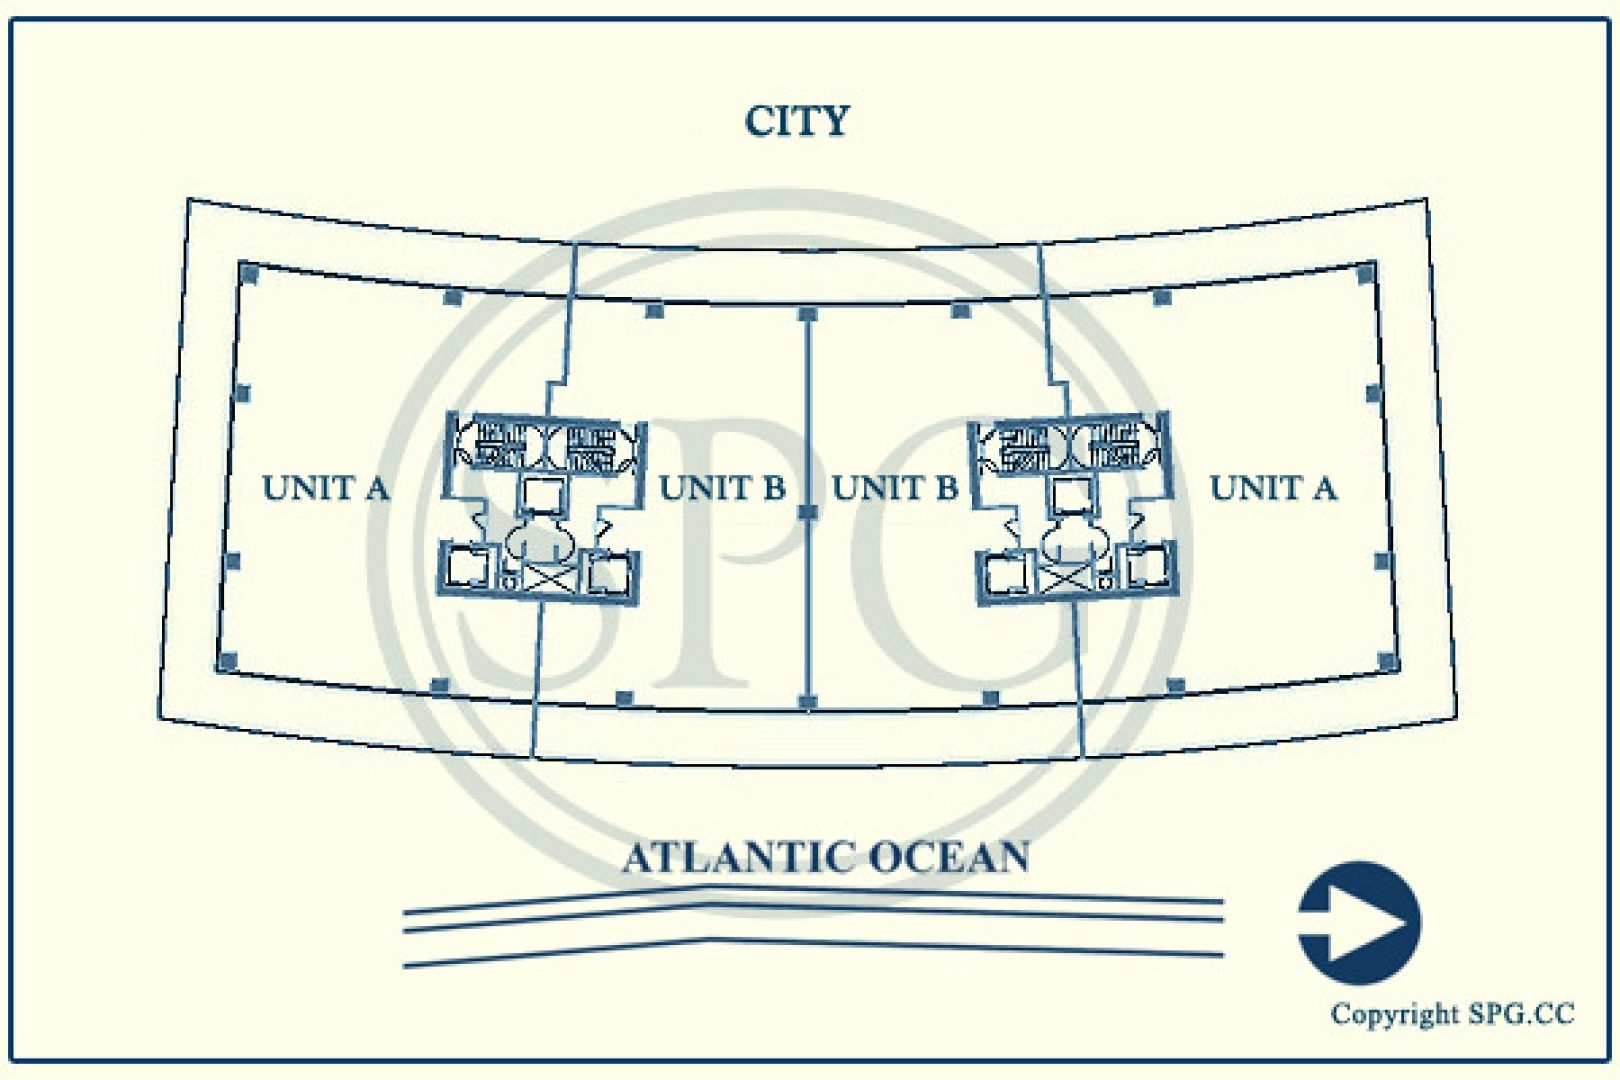 Siteplan for Apogee, Luxury Waterfront Condominiums Located at 800 South Pointe Drive, Miami Beach, Florida 33139